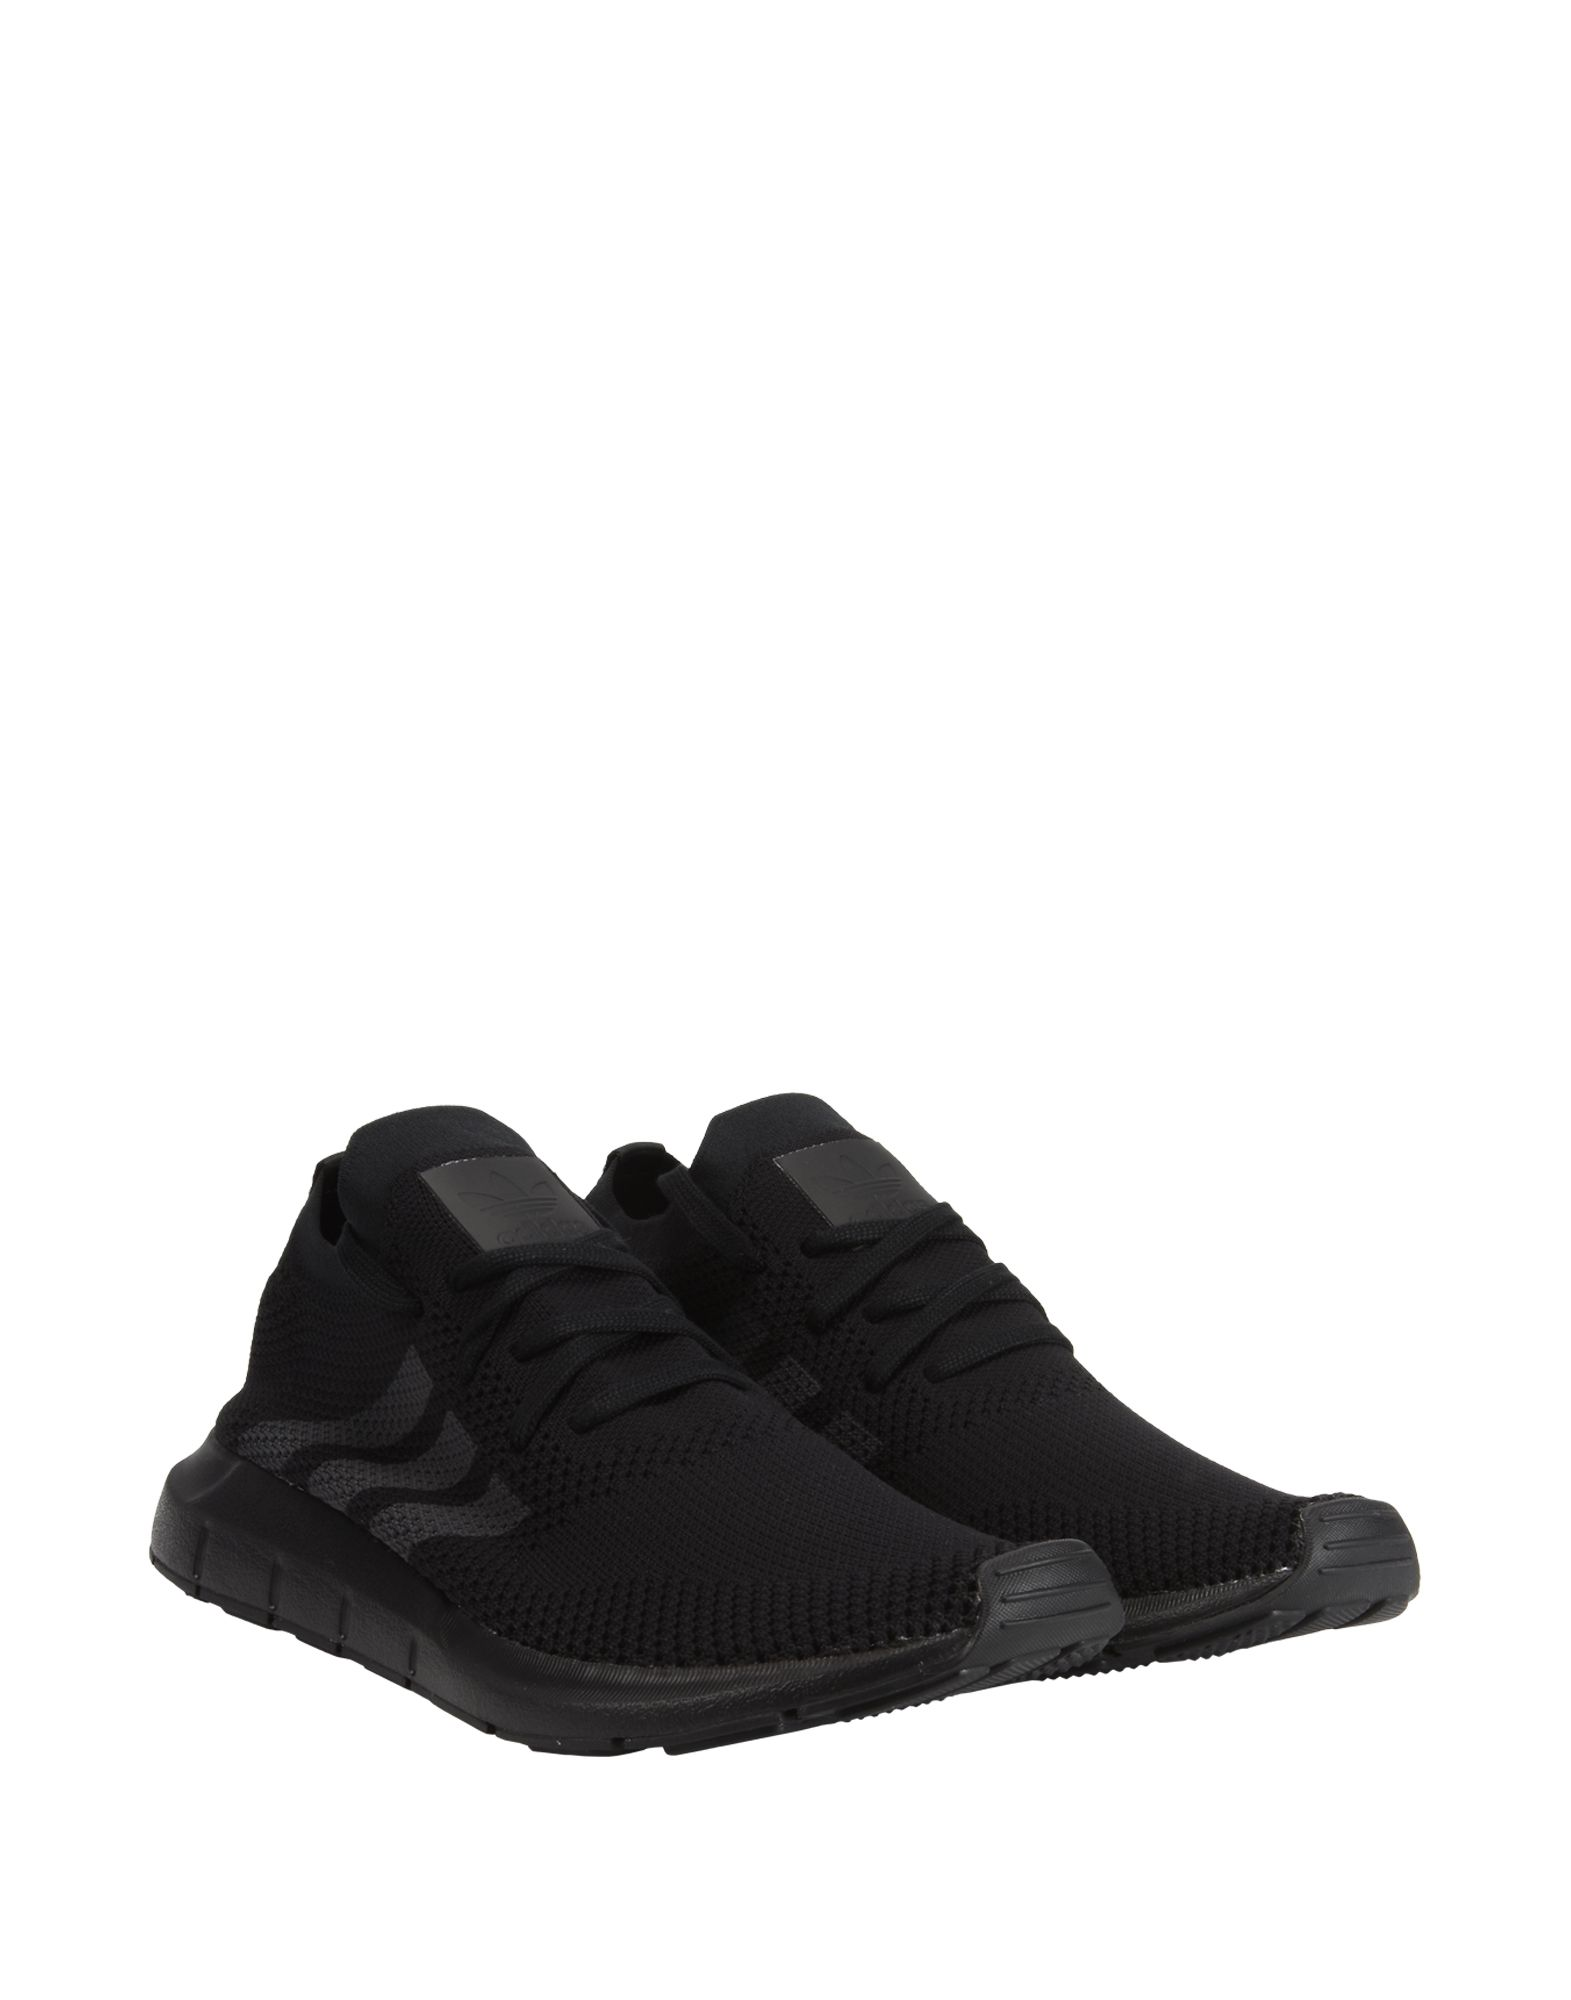 Sneakers Adidas Originals Swift Run Pk - Homme - Sneakers Adidas Originals sur